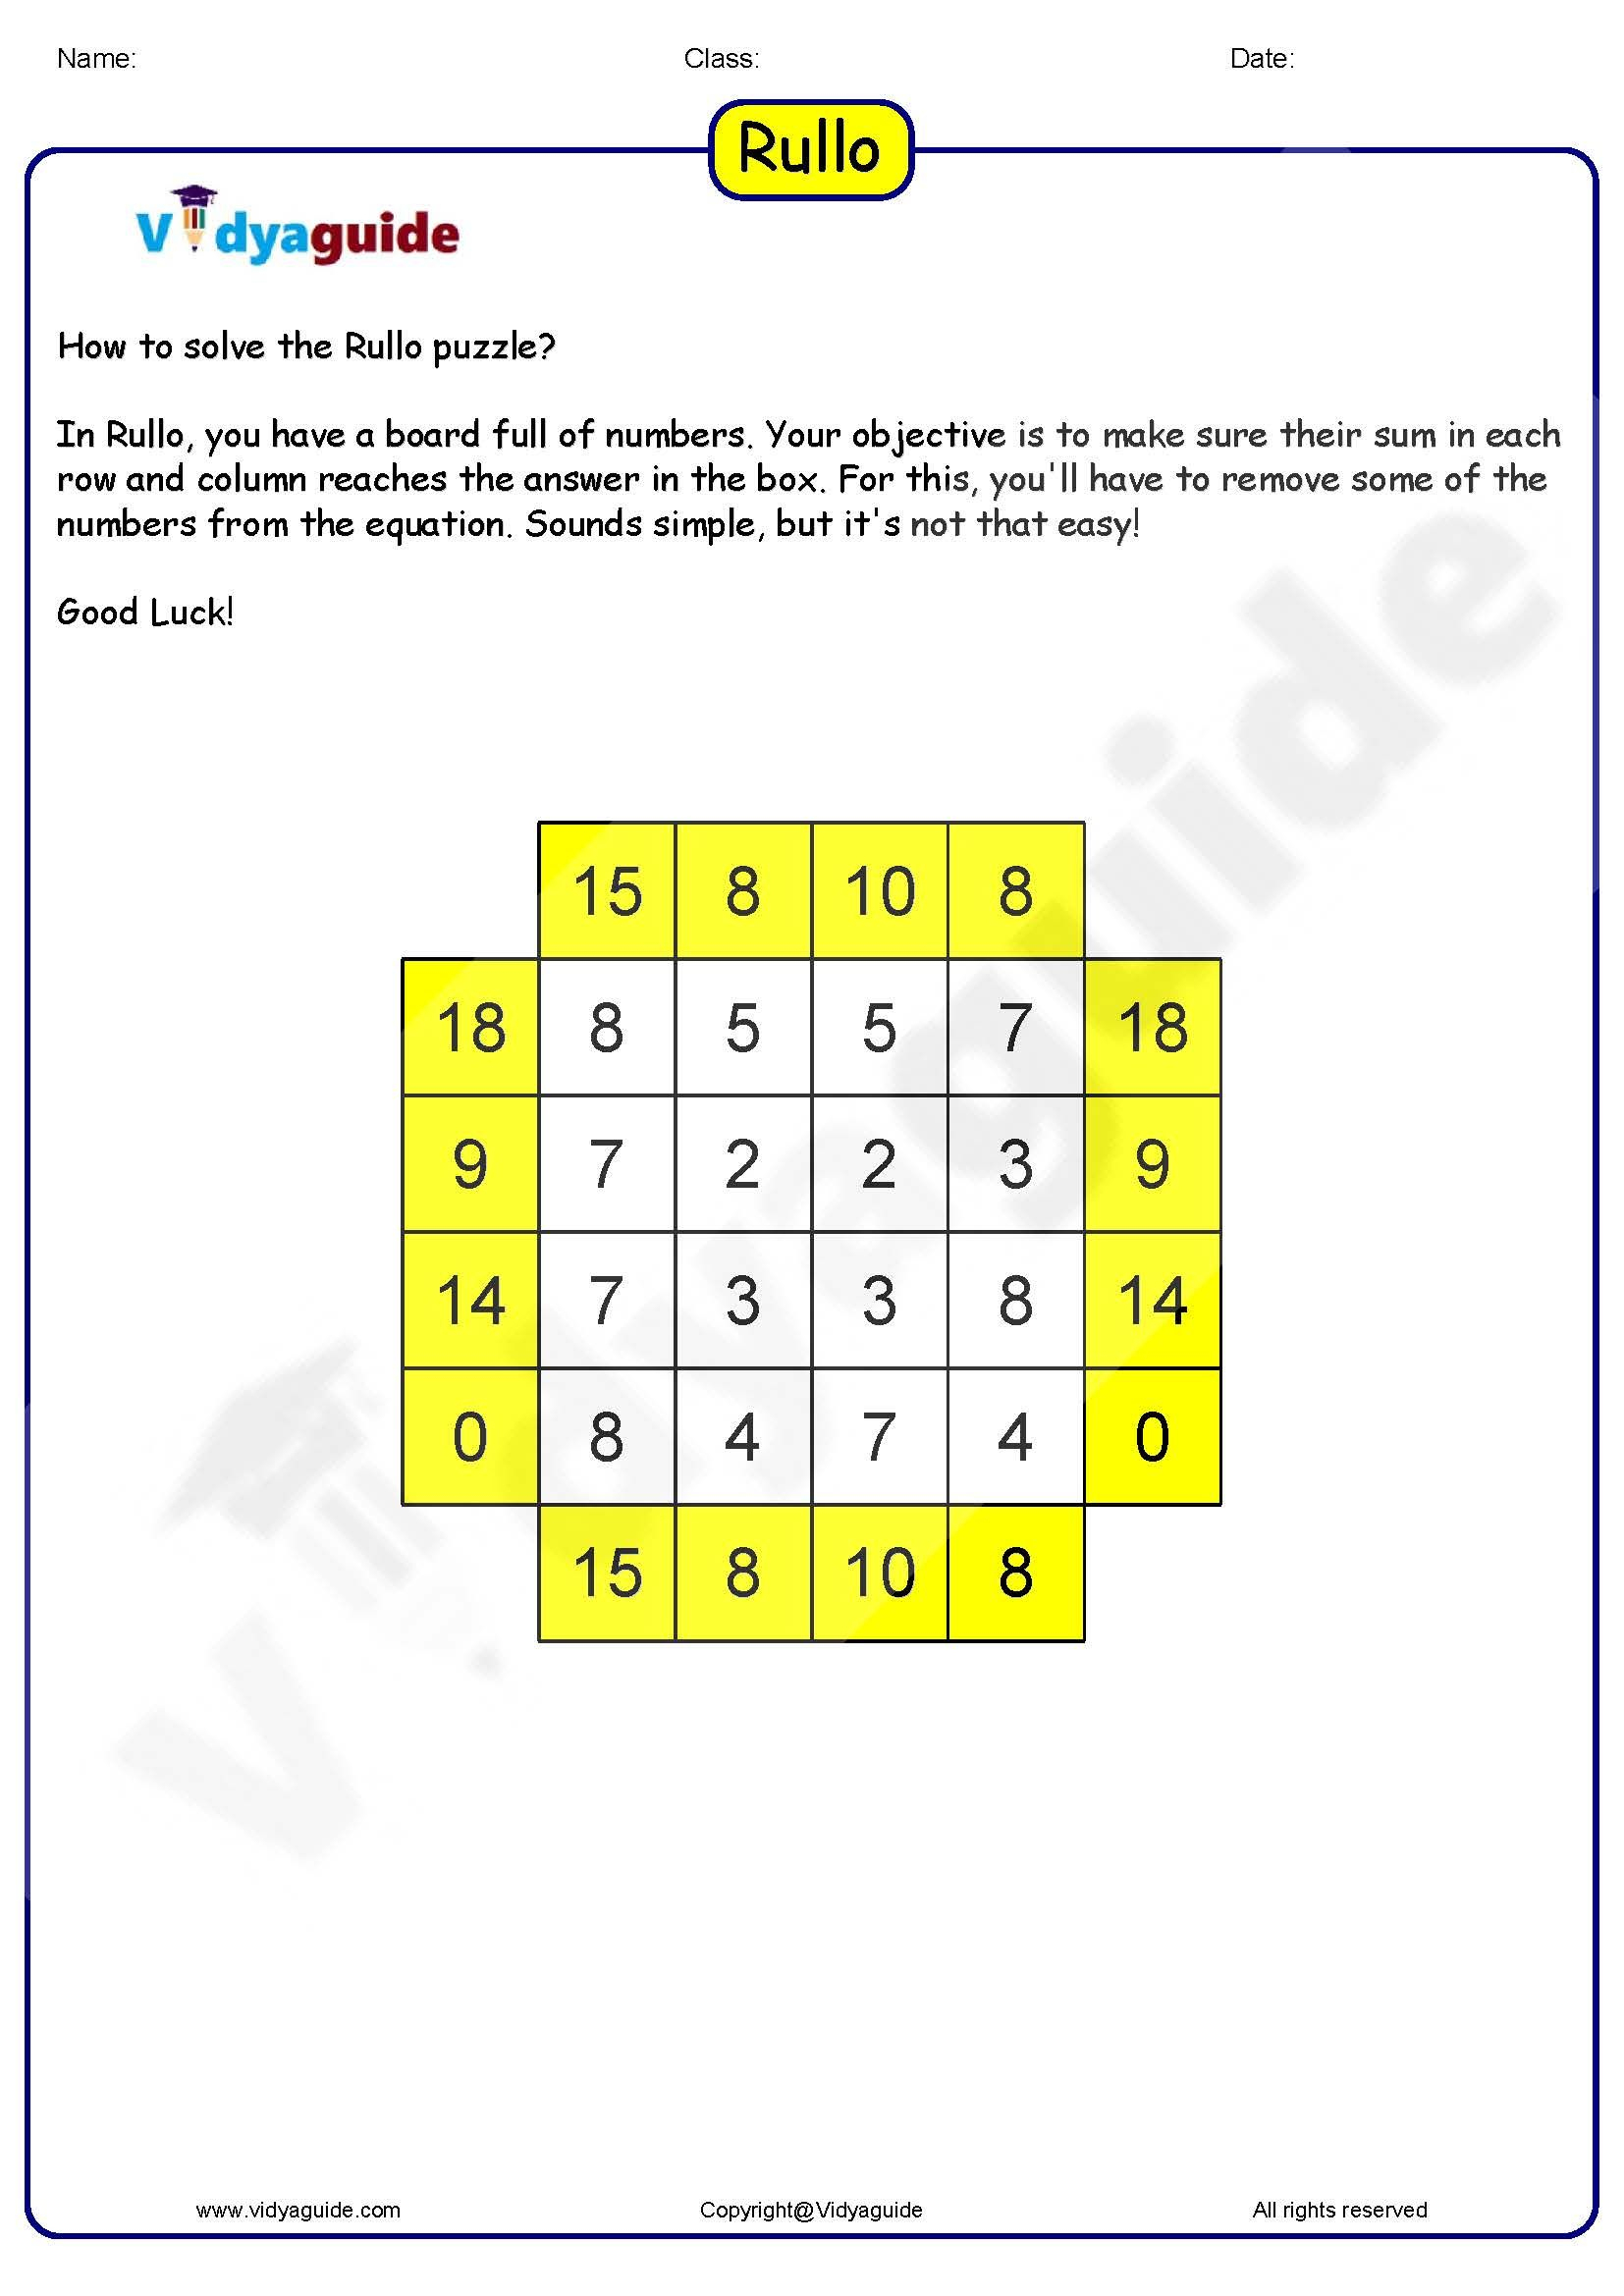 Rullo 01 - Download This Printable Math Puzzle Game As A Pdf